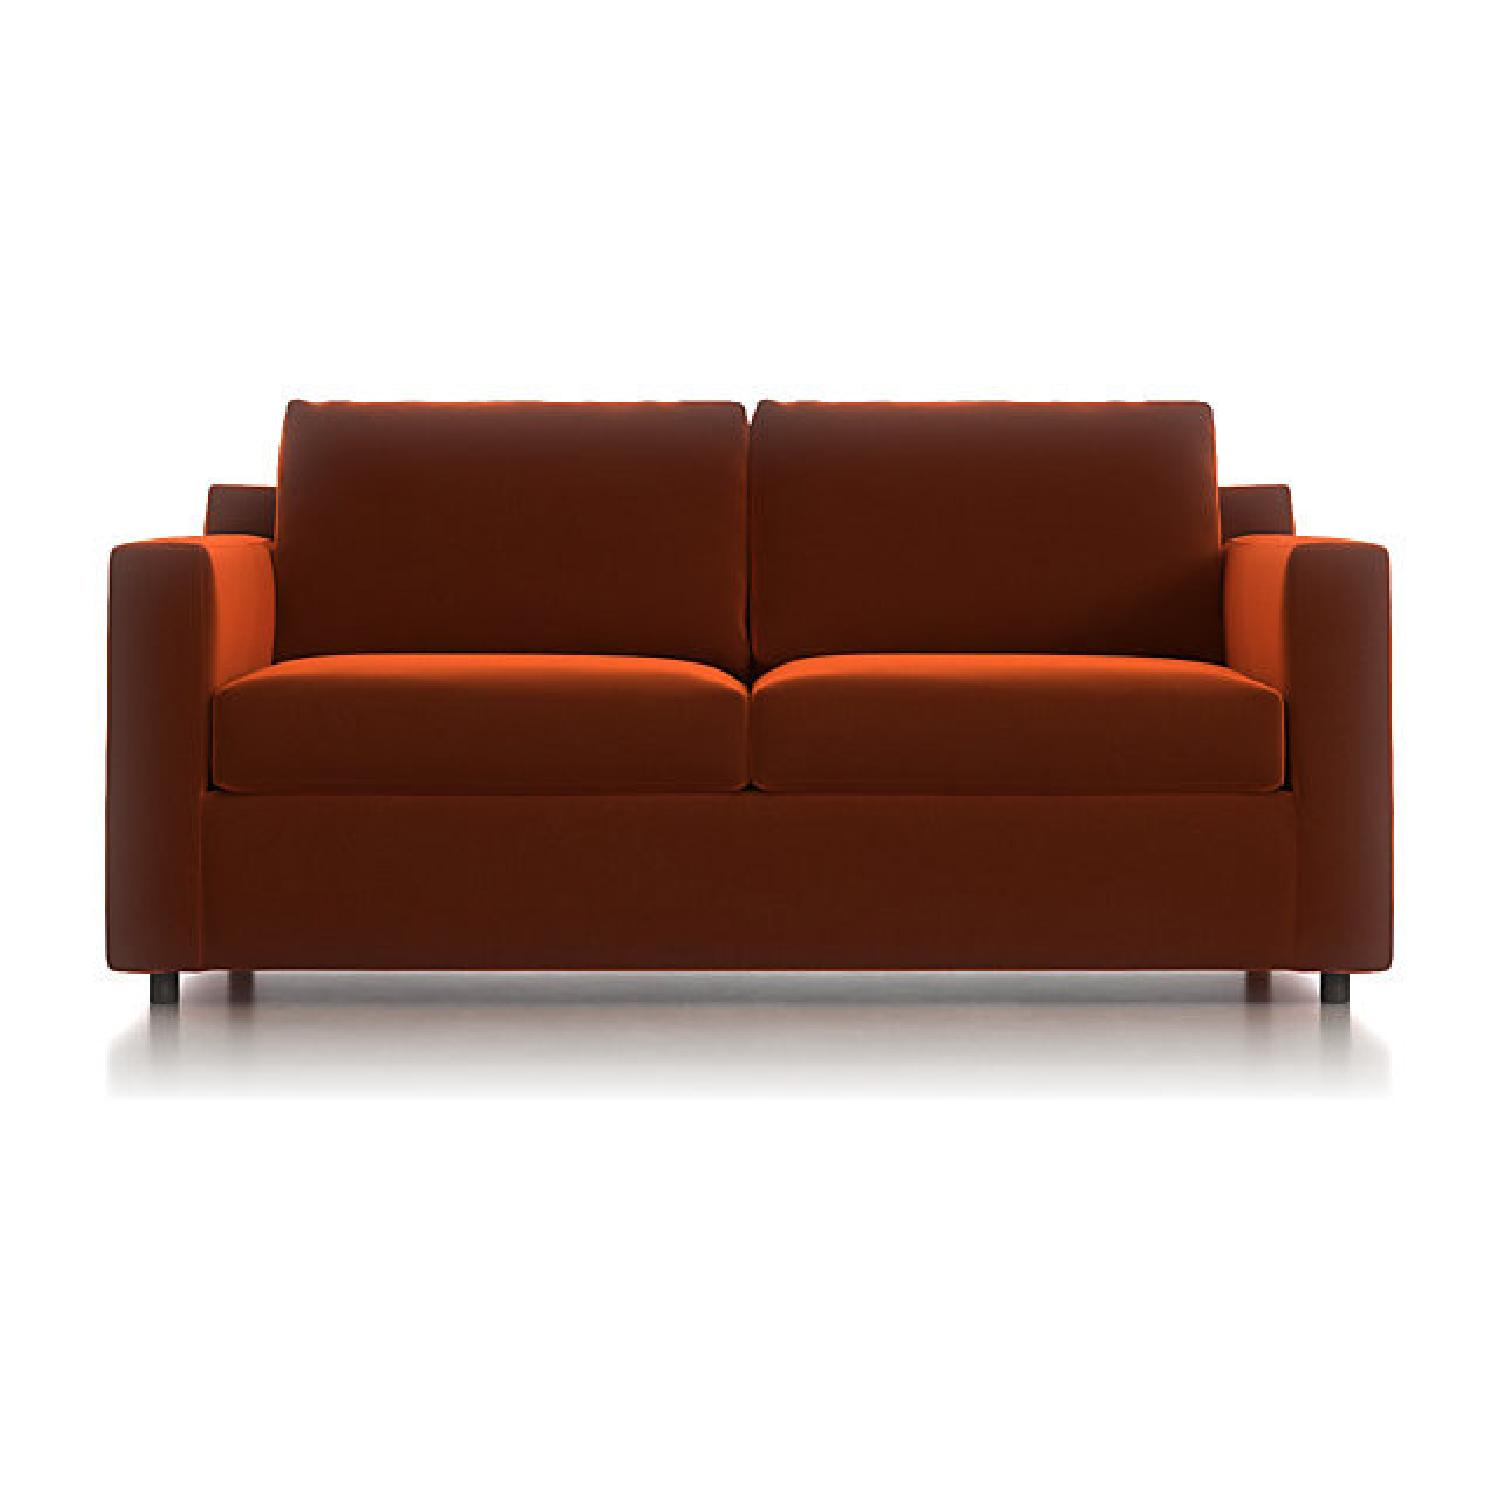 Crate & Barrel Davis Sofa - image-5